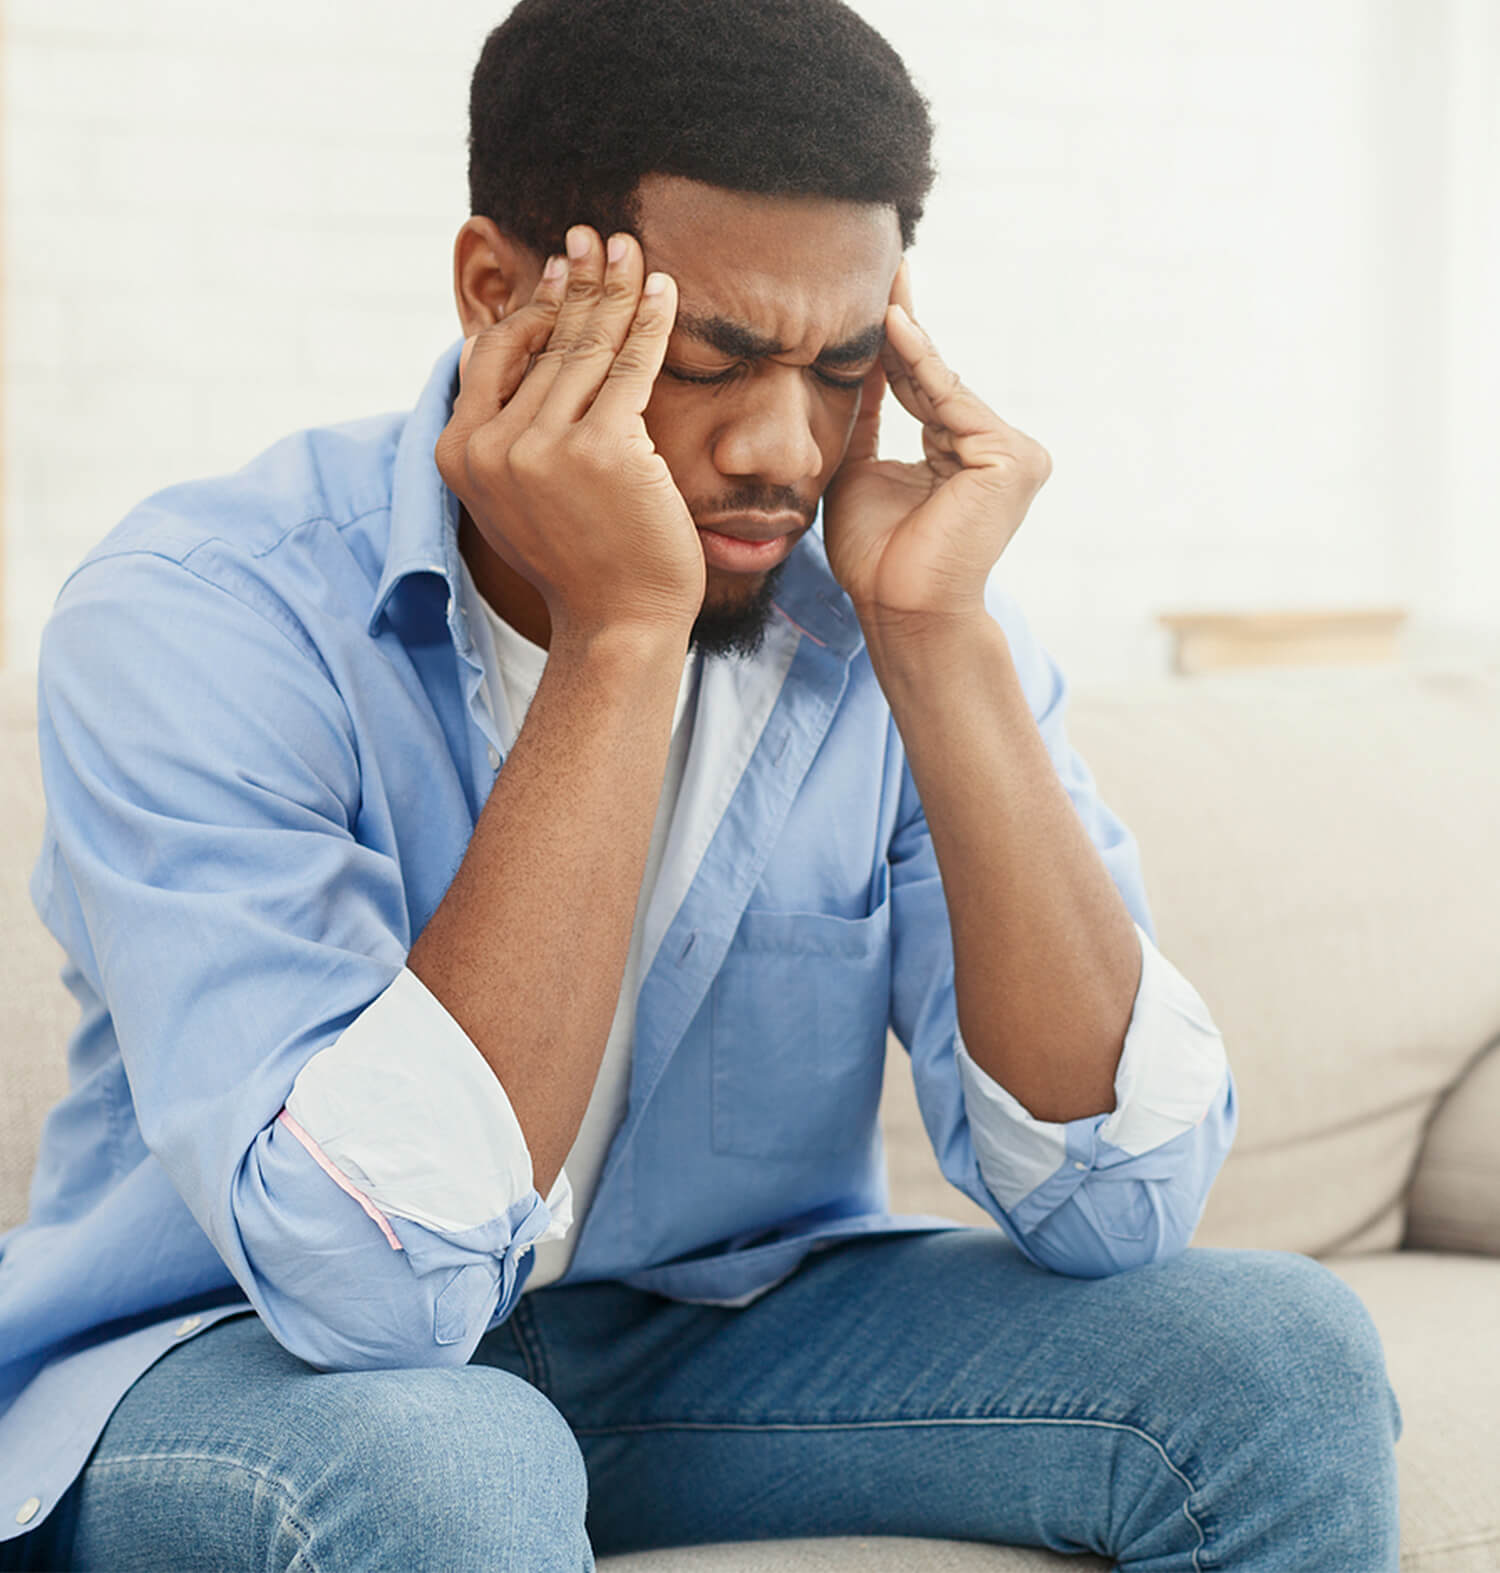 Black man rubbing temples while sitting in distress. Symptoms of anxiety don't have to overtake your brain space. Start moving forward and coping with an anxiety therapist. In anxiety treatment in Torrance, CA and surrounding areas we can help with GAD, performance, social anxiety, and separation anxiety. Get in touch!